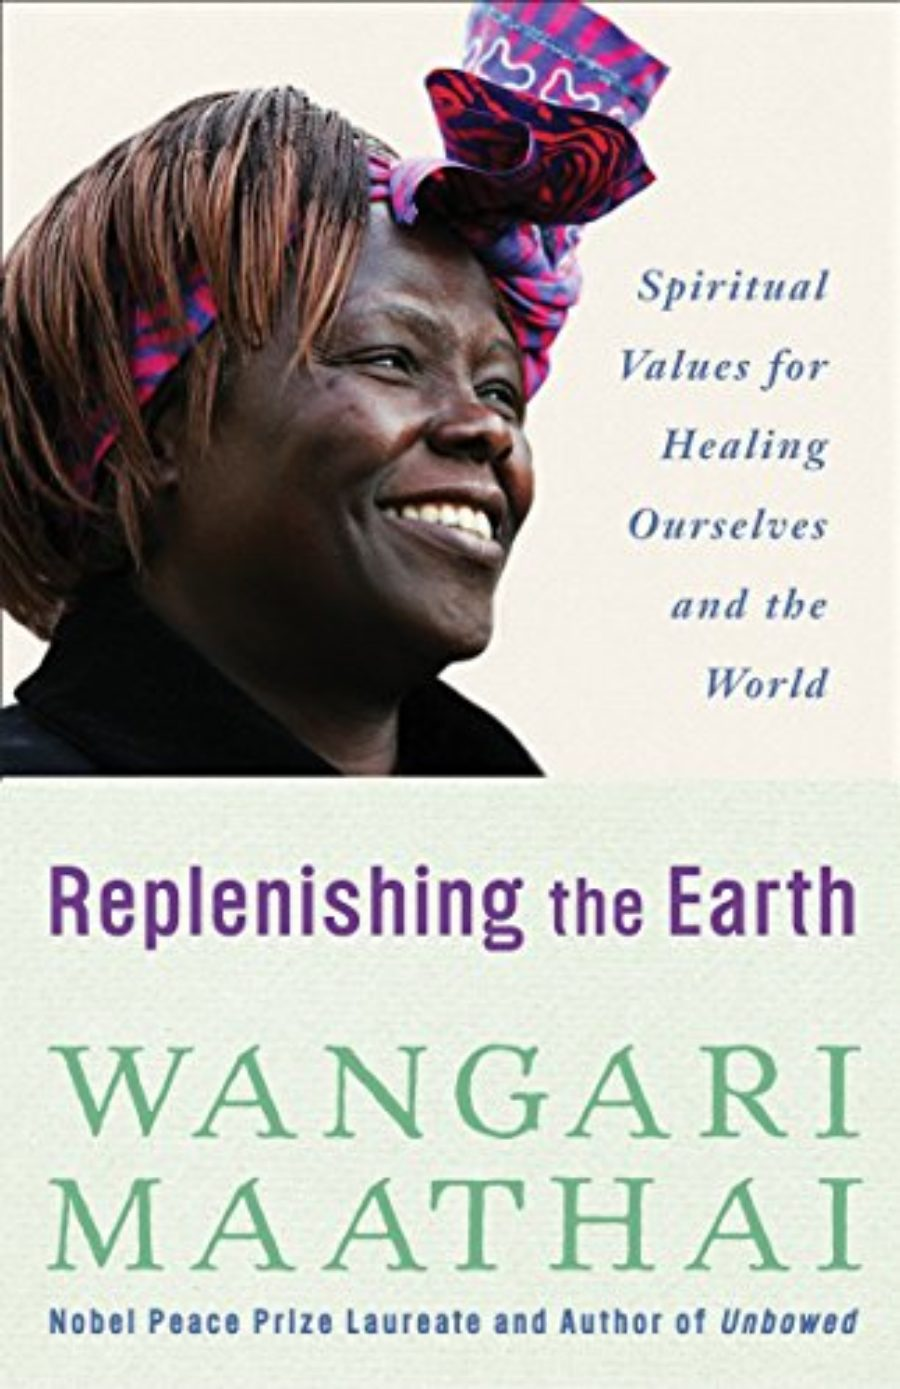 Cover of Replenishing the Earth: Spiritual Values for Healing Ourselves and the World